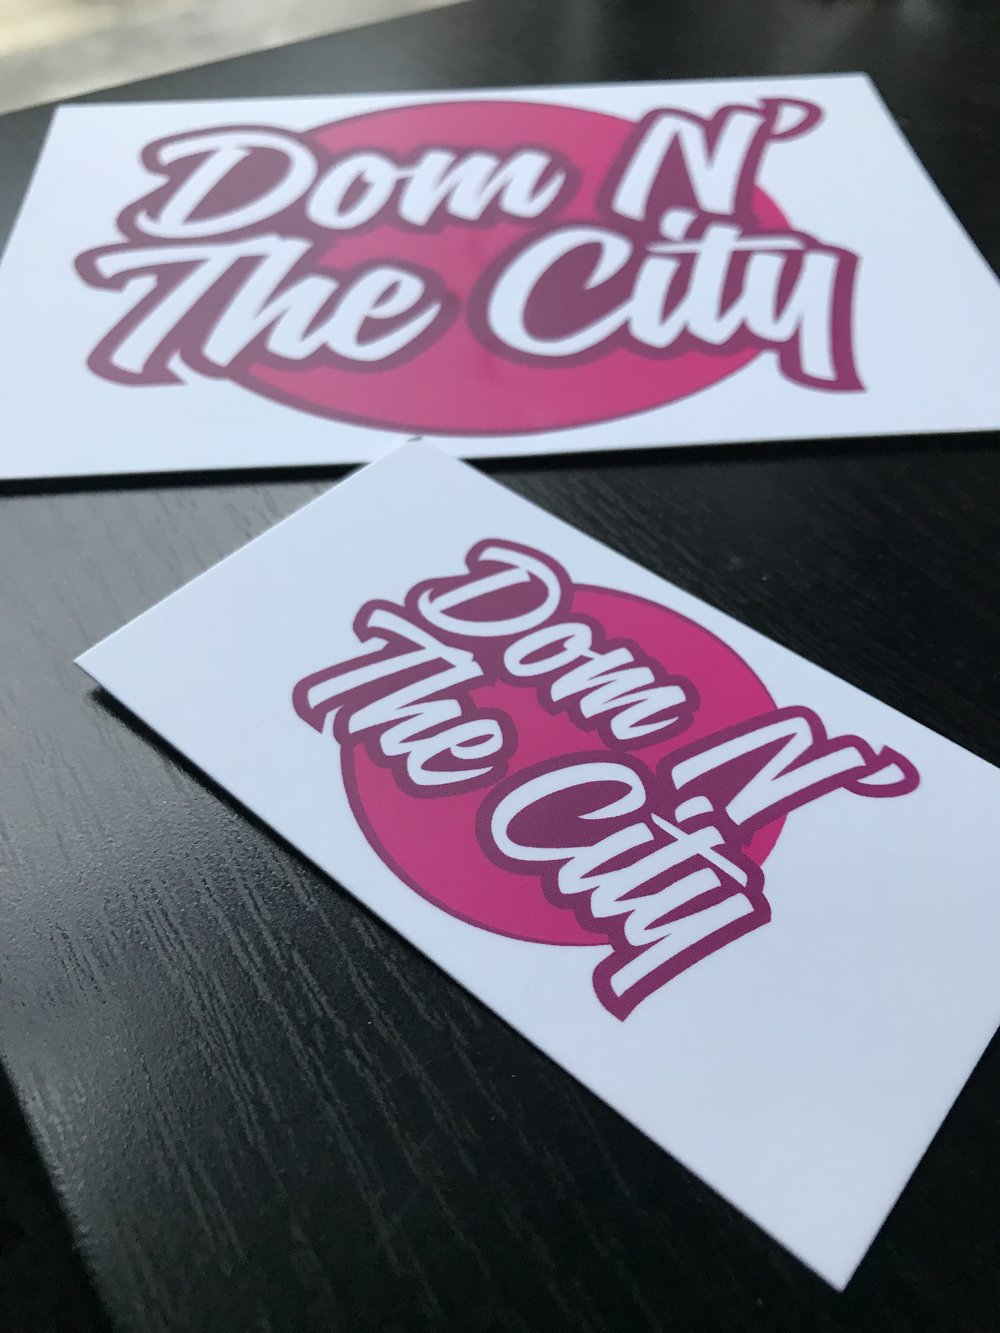 Branded postcards and business cards